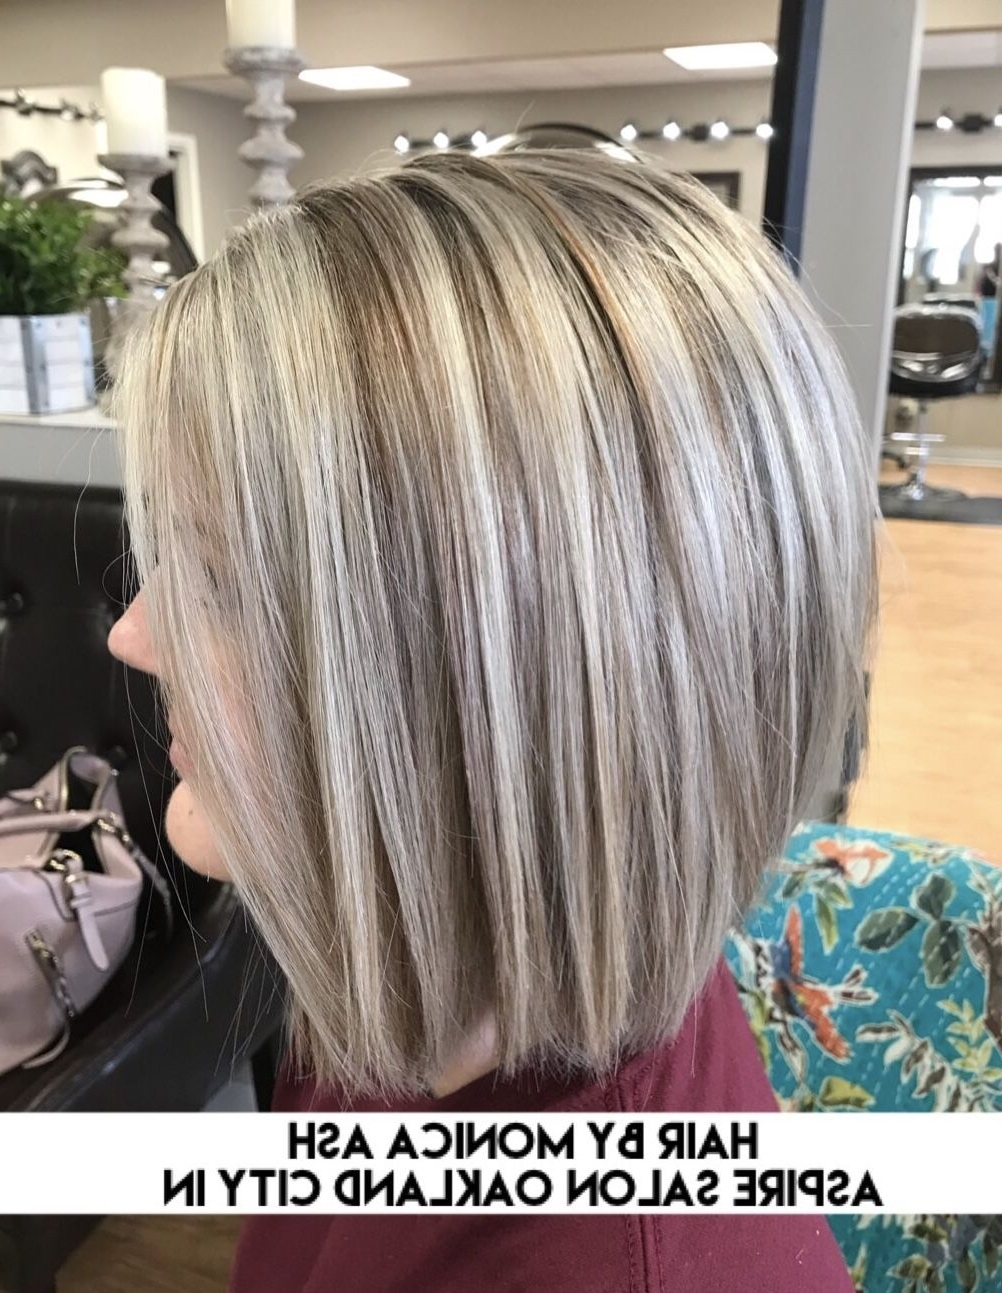 A Sweet Icy Blonde ❤ With A Choppy Bob Haircutmonica Ash At Inside Well Known Icy Blonde Shaggy Bob Hairstyles (View 14 of 20)